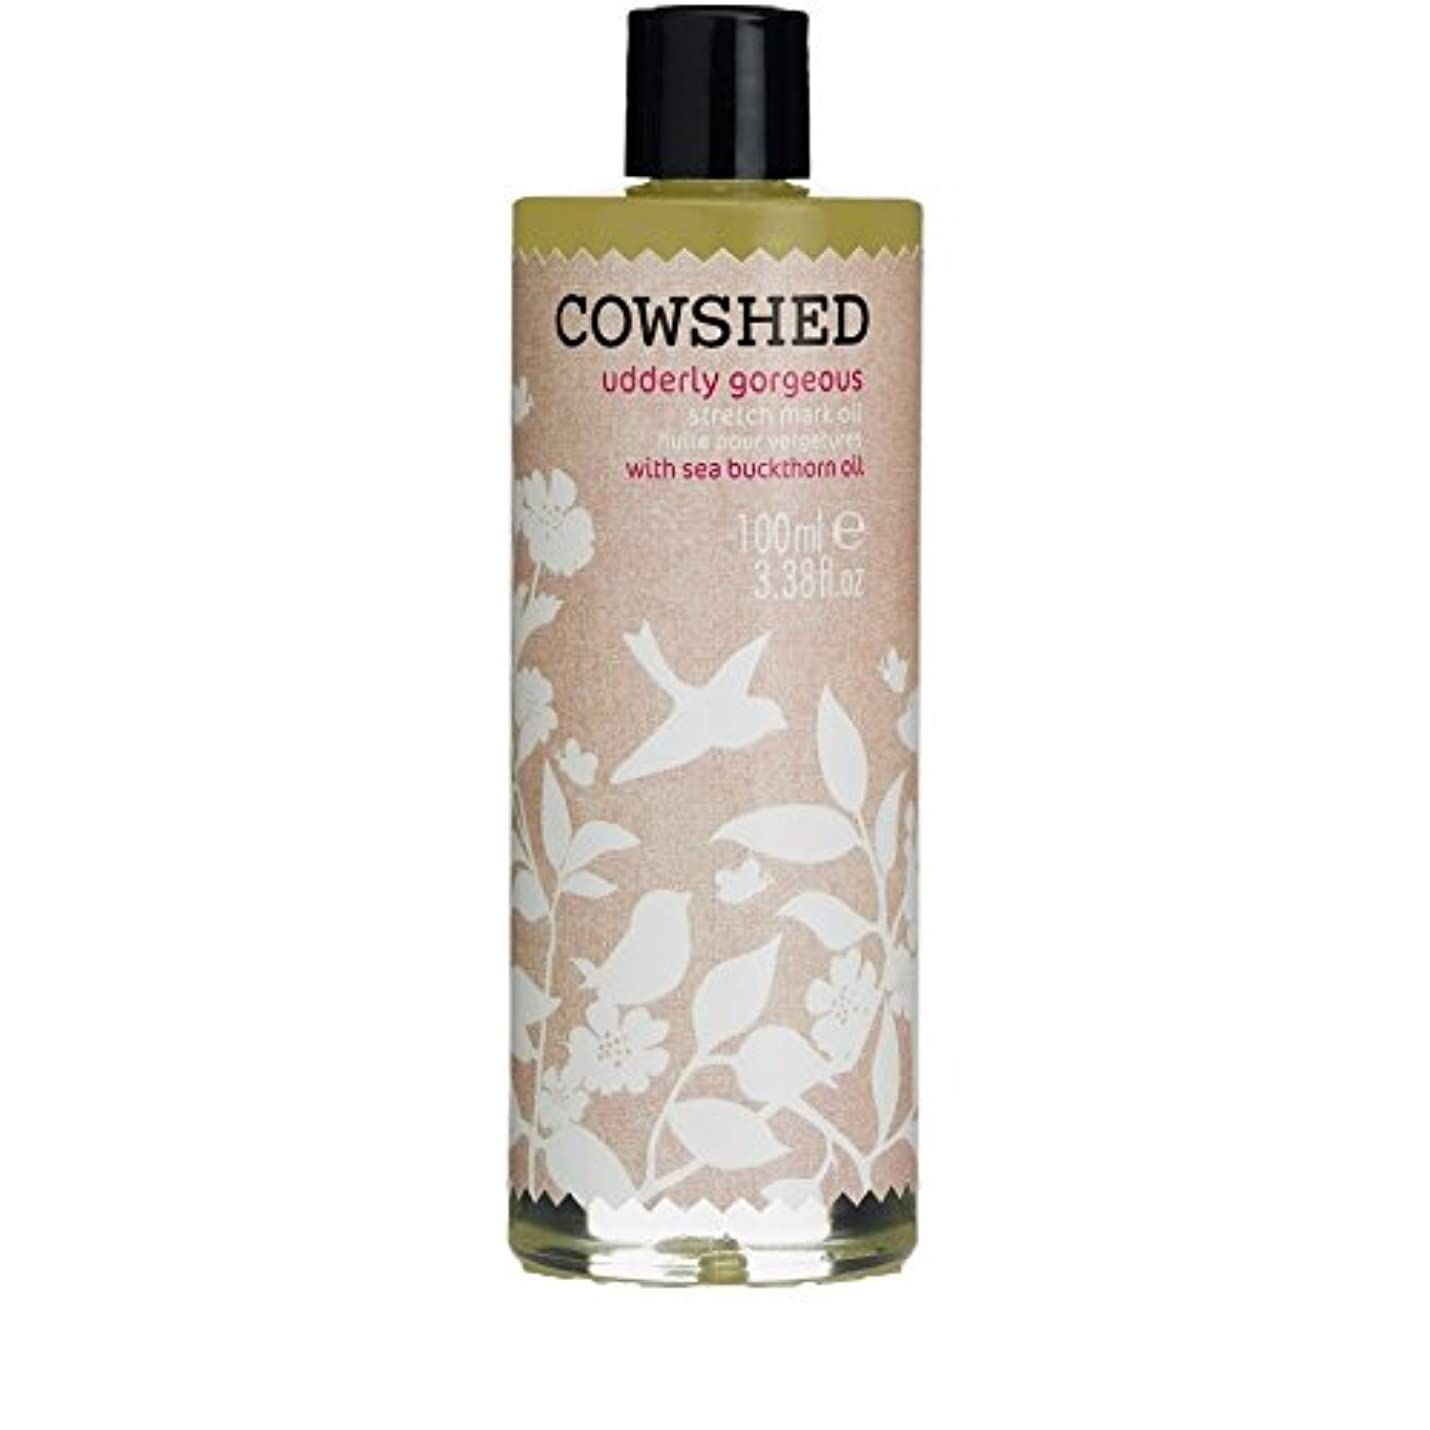 Cowshed Udderly Gorgeous Stretch Mark Oil 100ml - 牛舎ゴージャスなストレッチマークオイル100ミリリットル [並行輸入品]